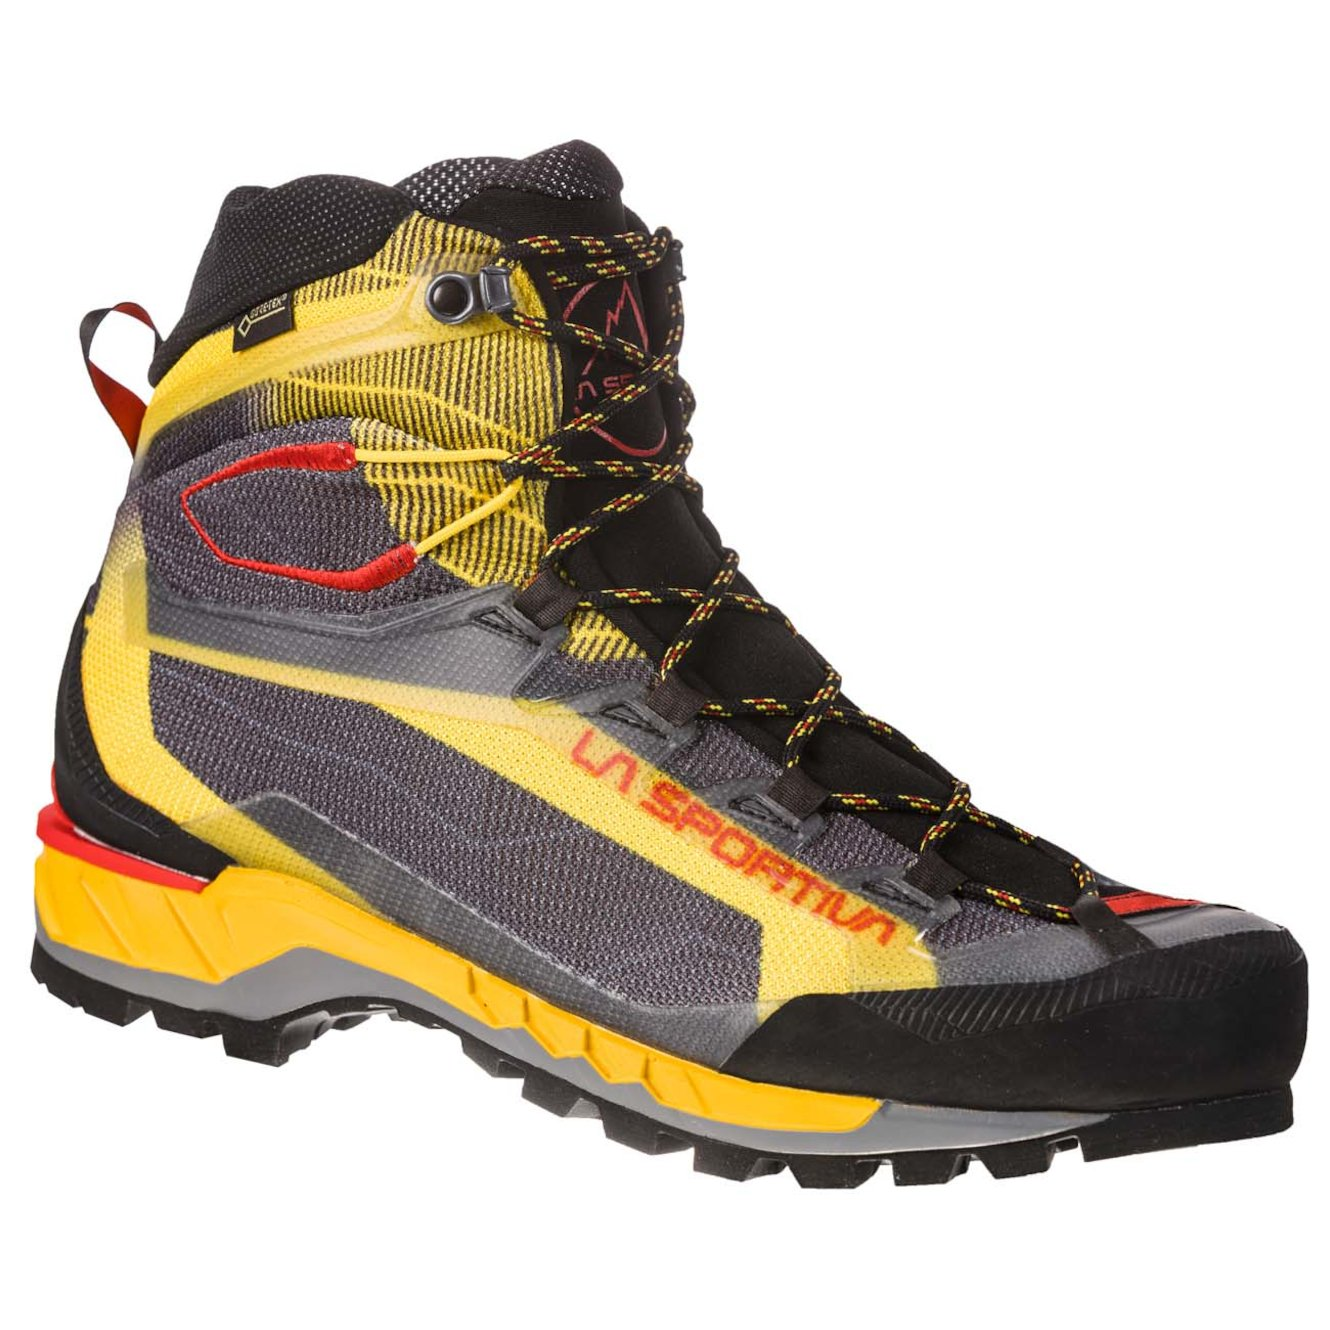 Best Light Mountaineering Boots - The Top Models of 2020